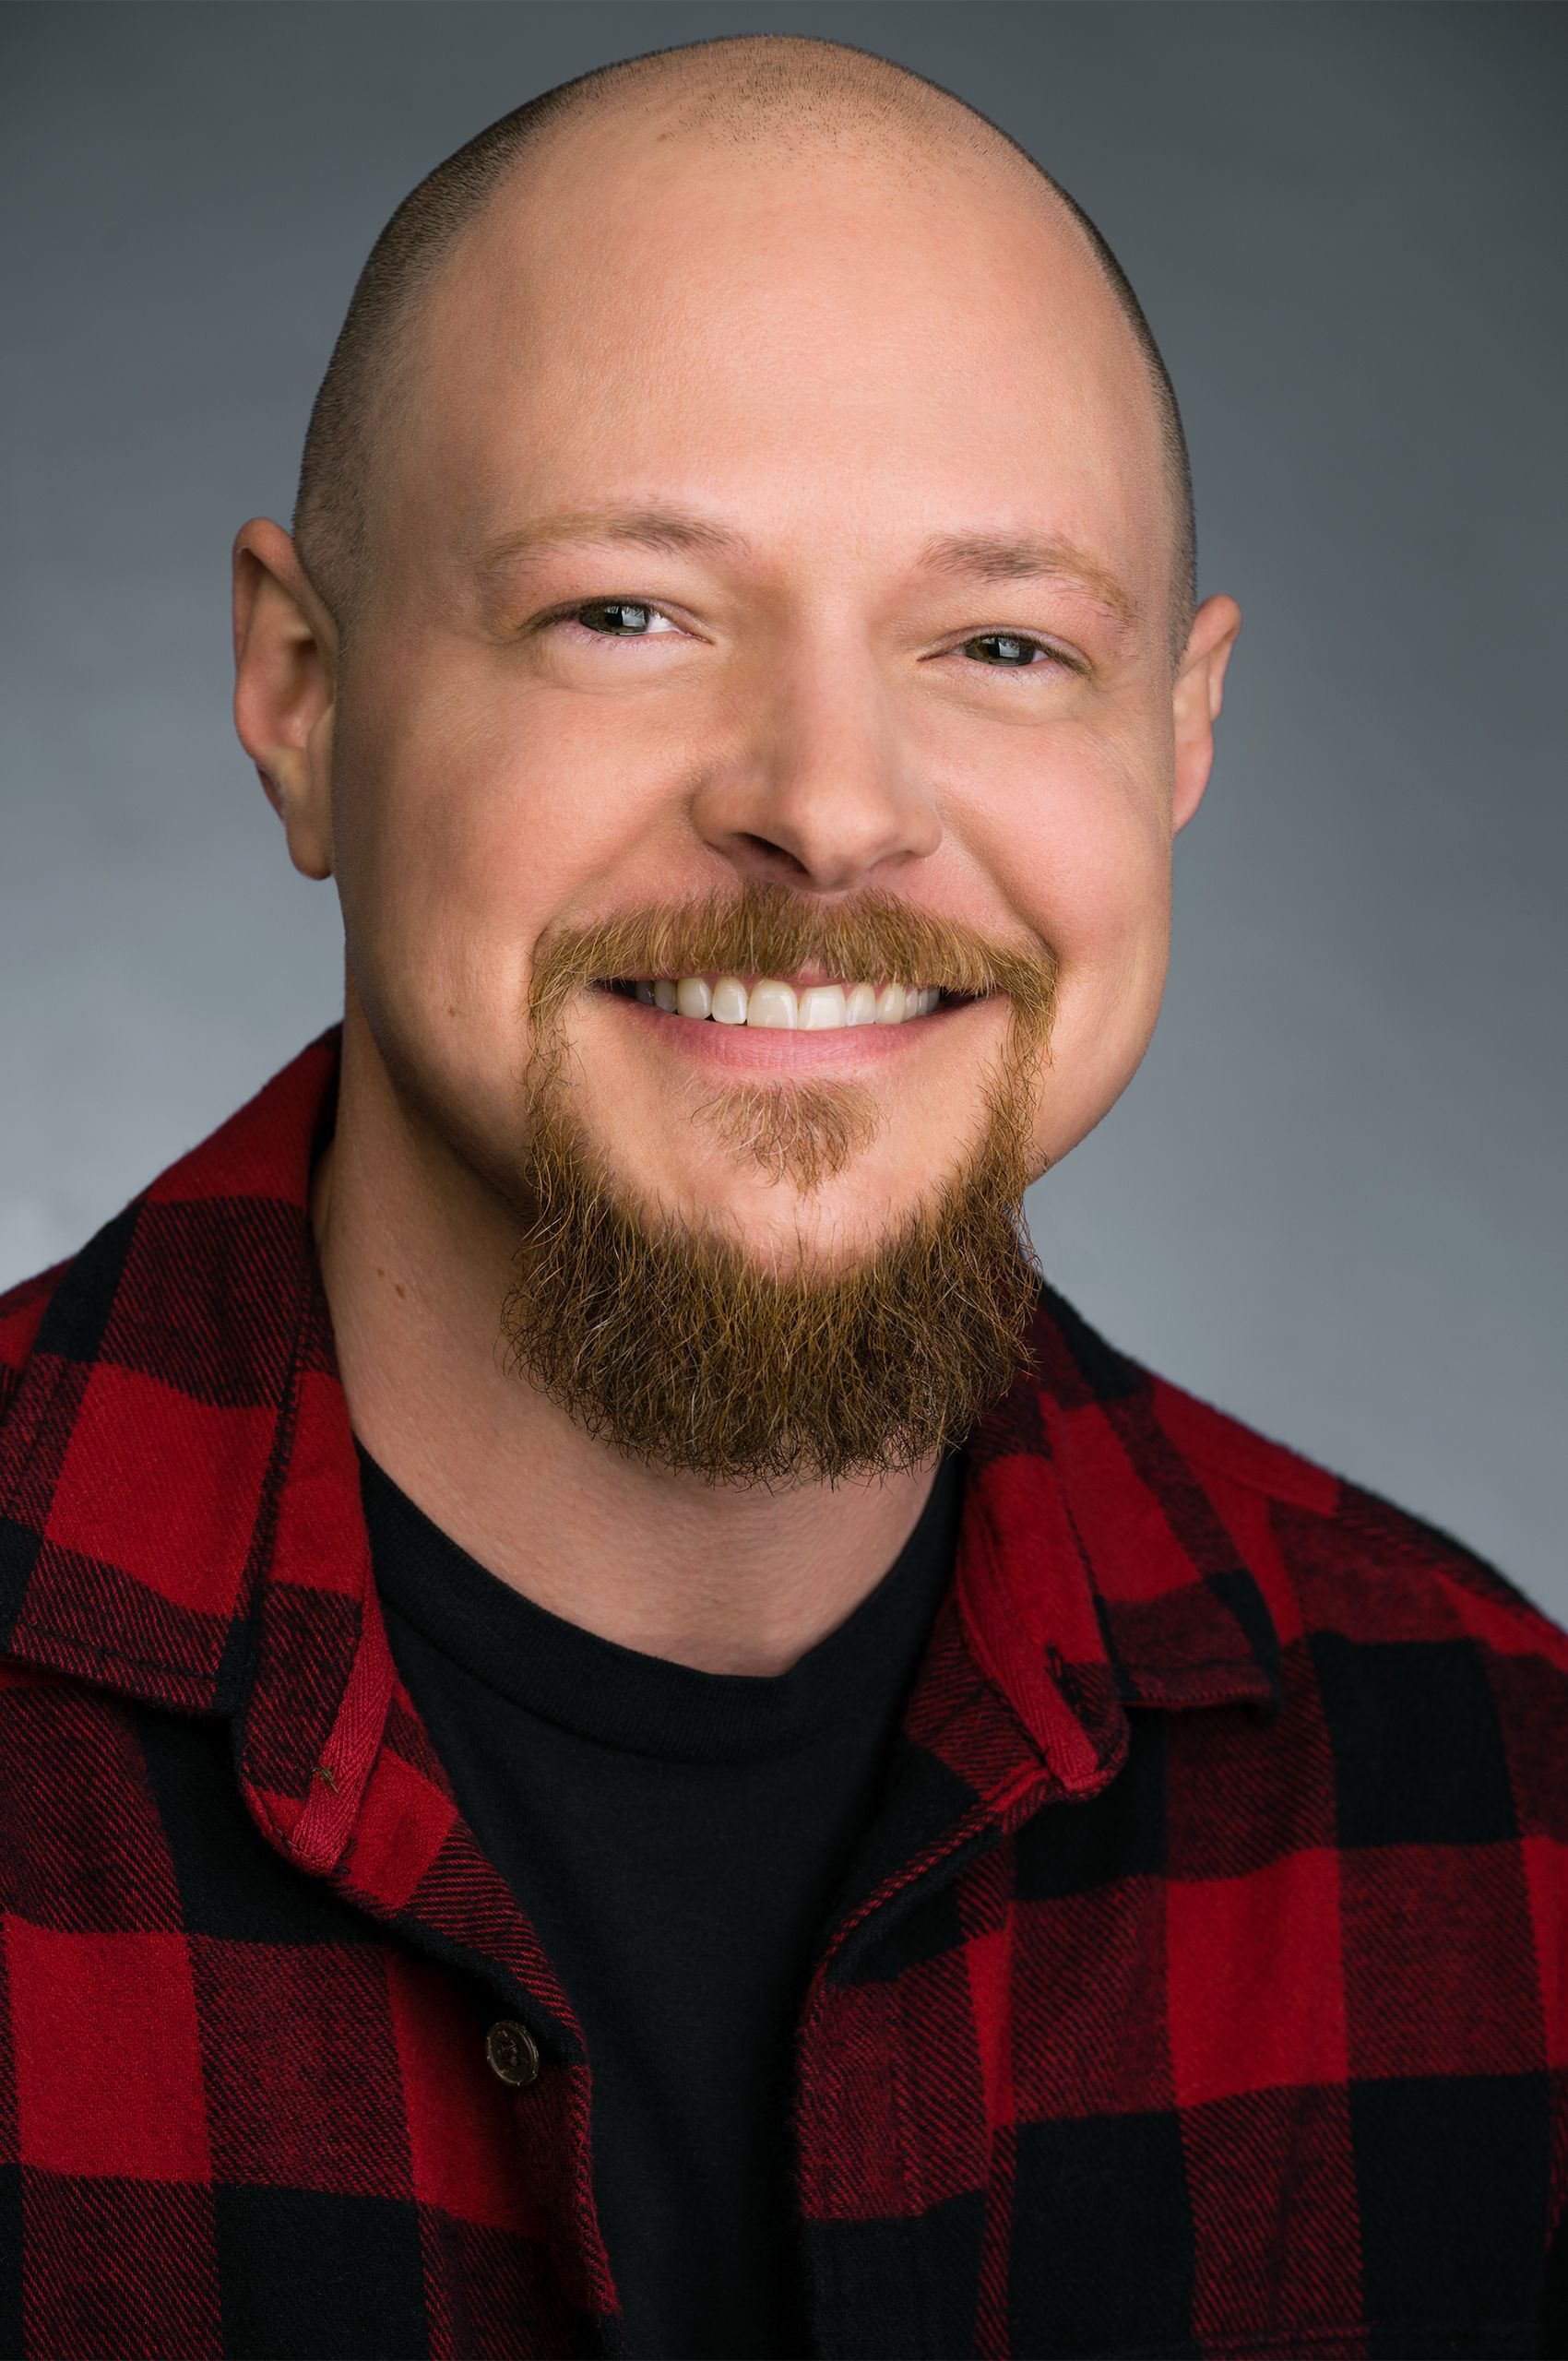 Nate Richert Biography Height Life Story Super Stars Bio Born nathaniel eric richert on 28th april, 1978 in st. nate richert biography height life